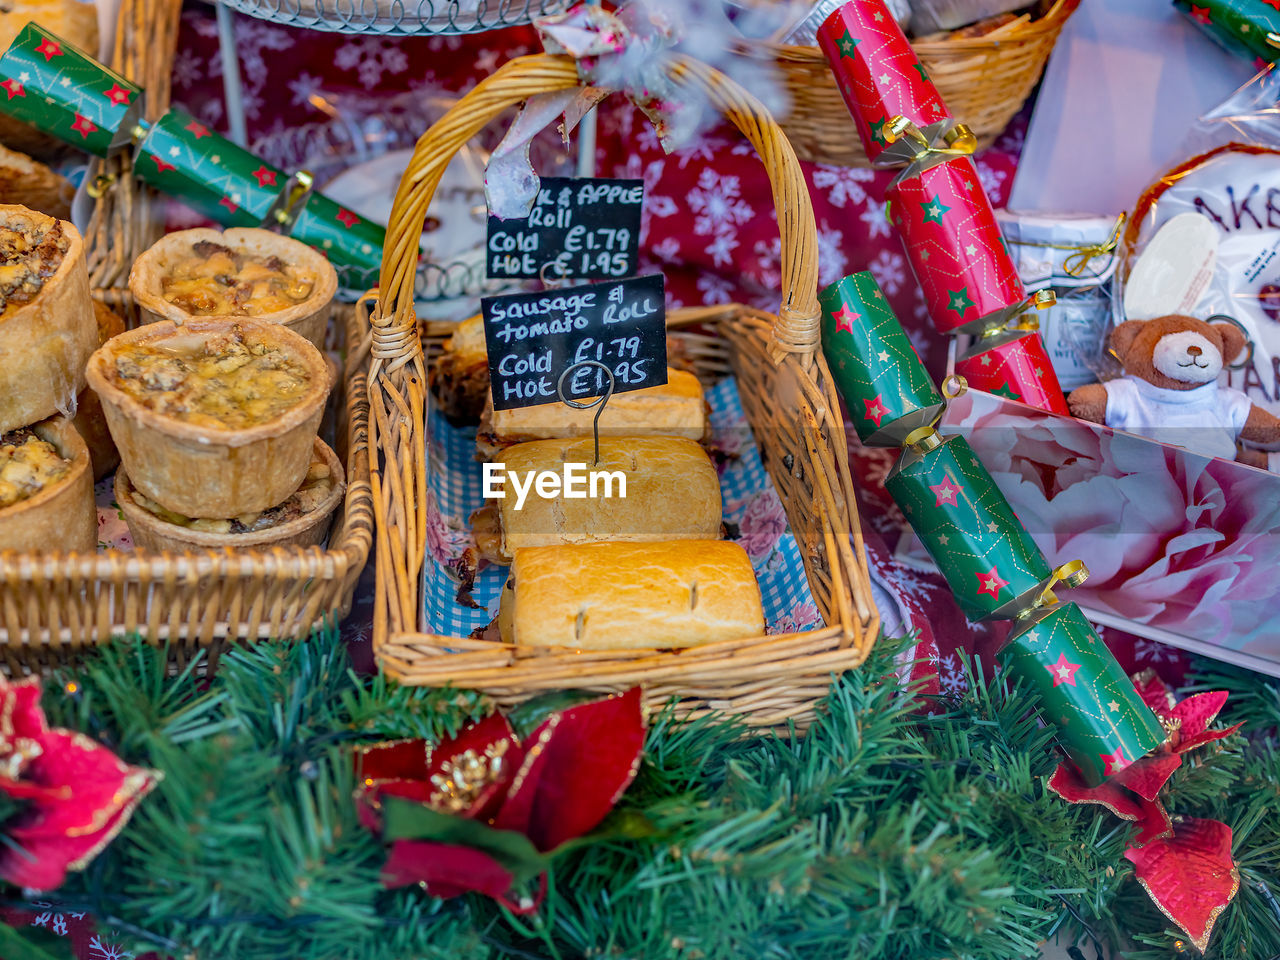 Baked christmas special pies, pastries and foods on display and for sale in the window of a bakery